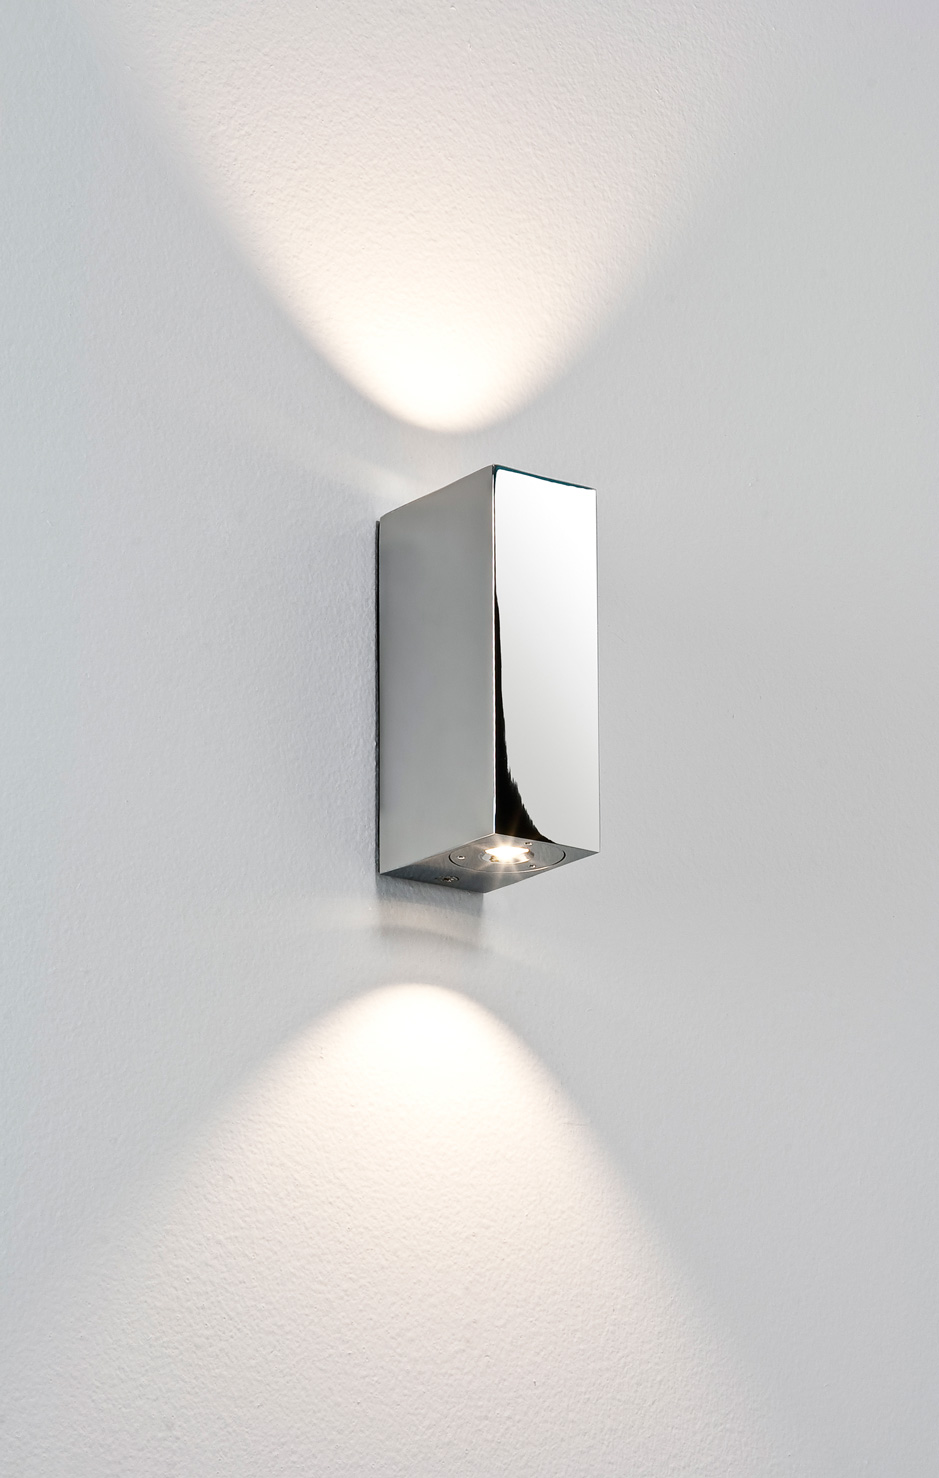 ASTRO Bloc 0829 bathroom LED up down wall light 2 X 1W 3000K warmwhite chrome